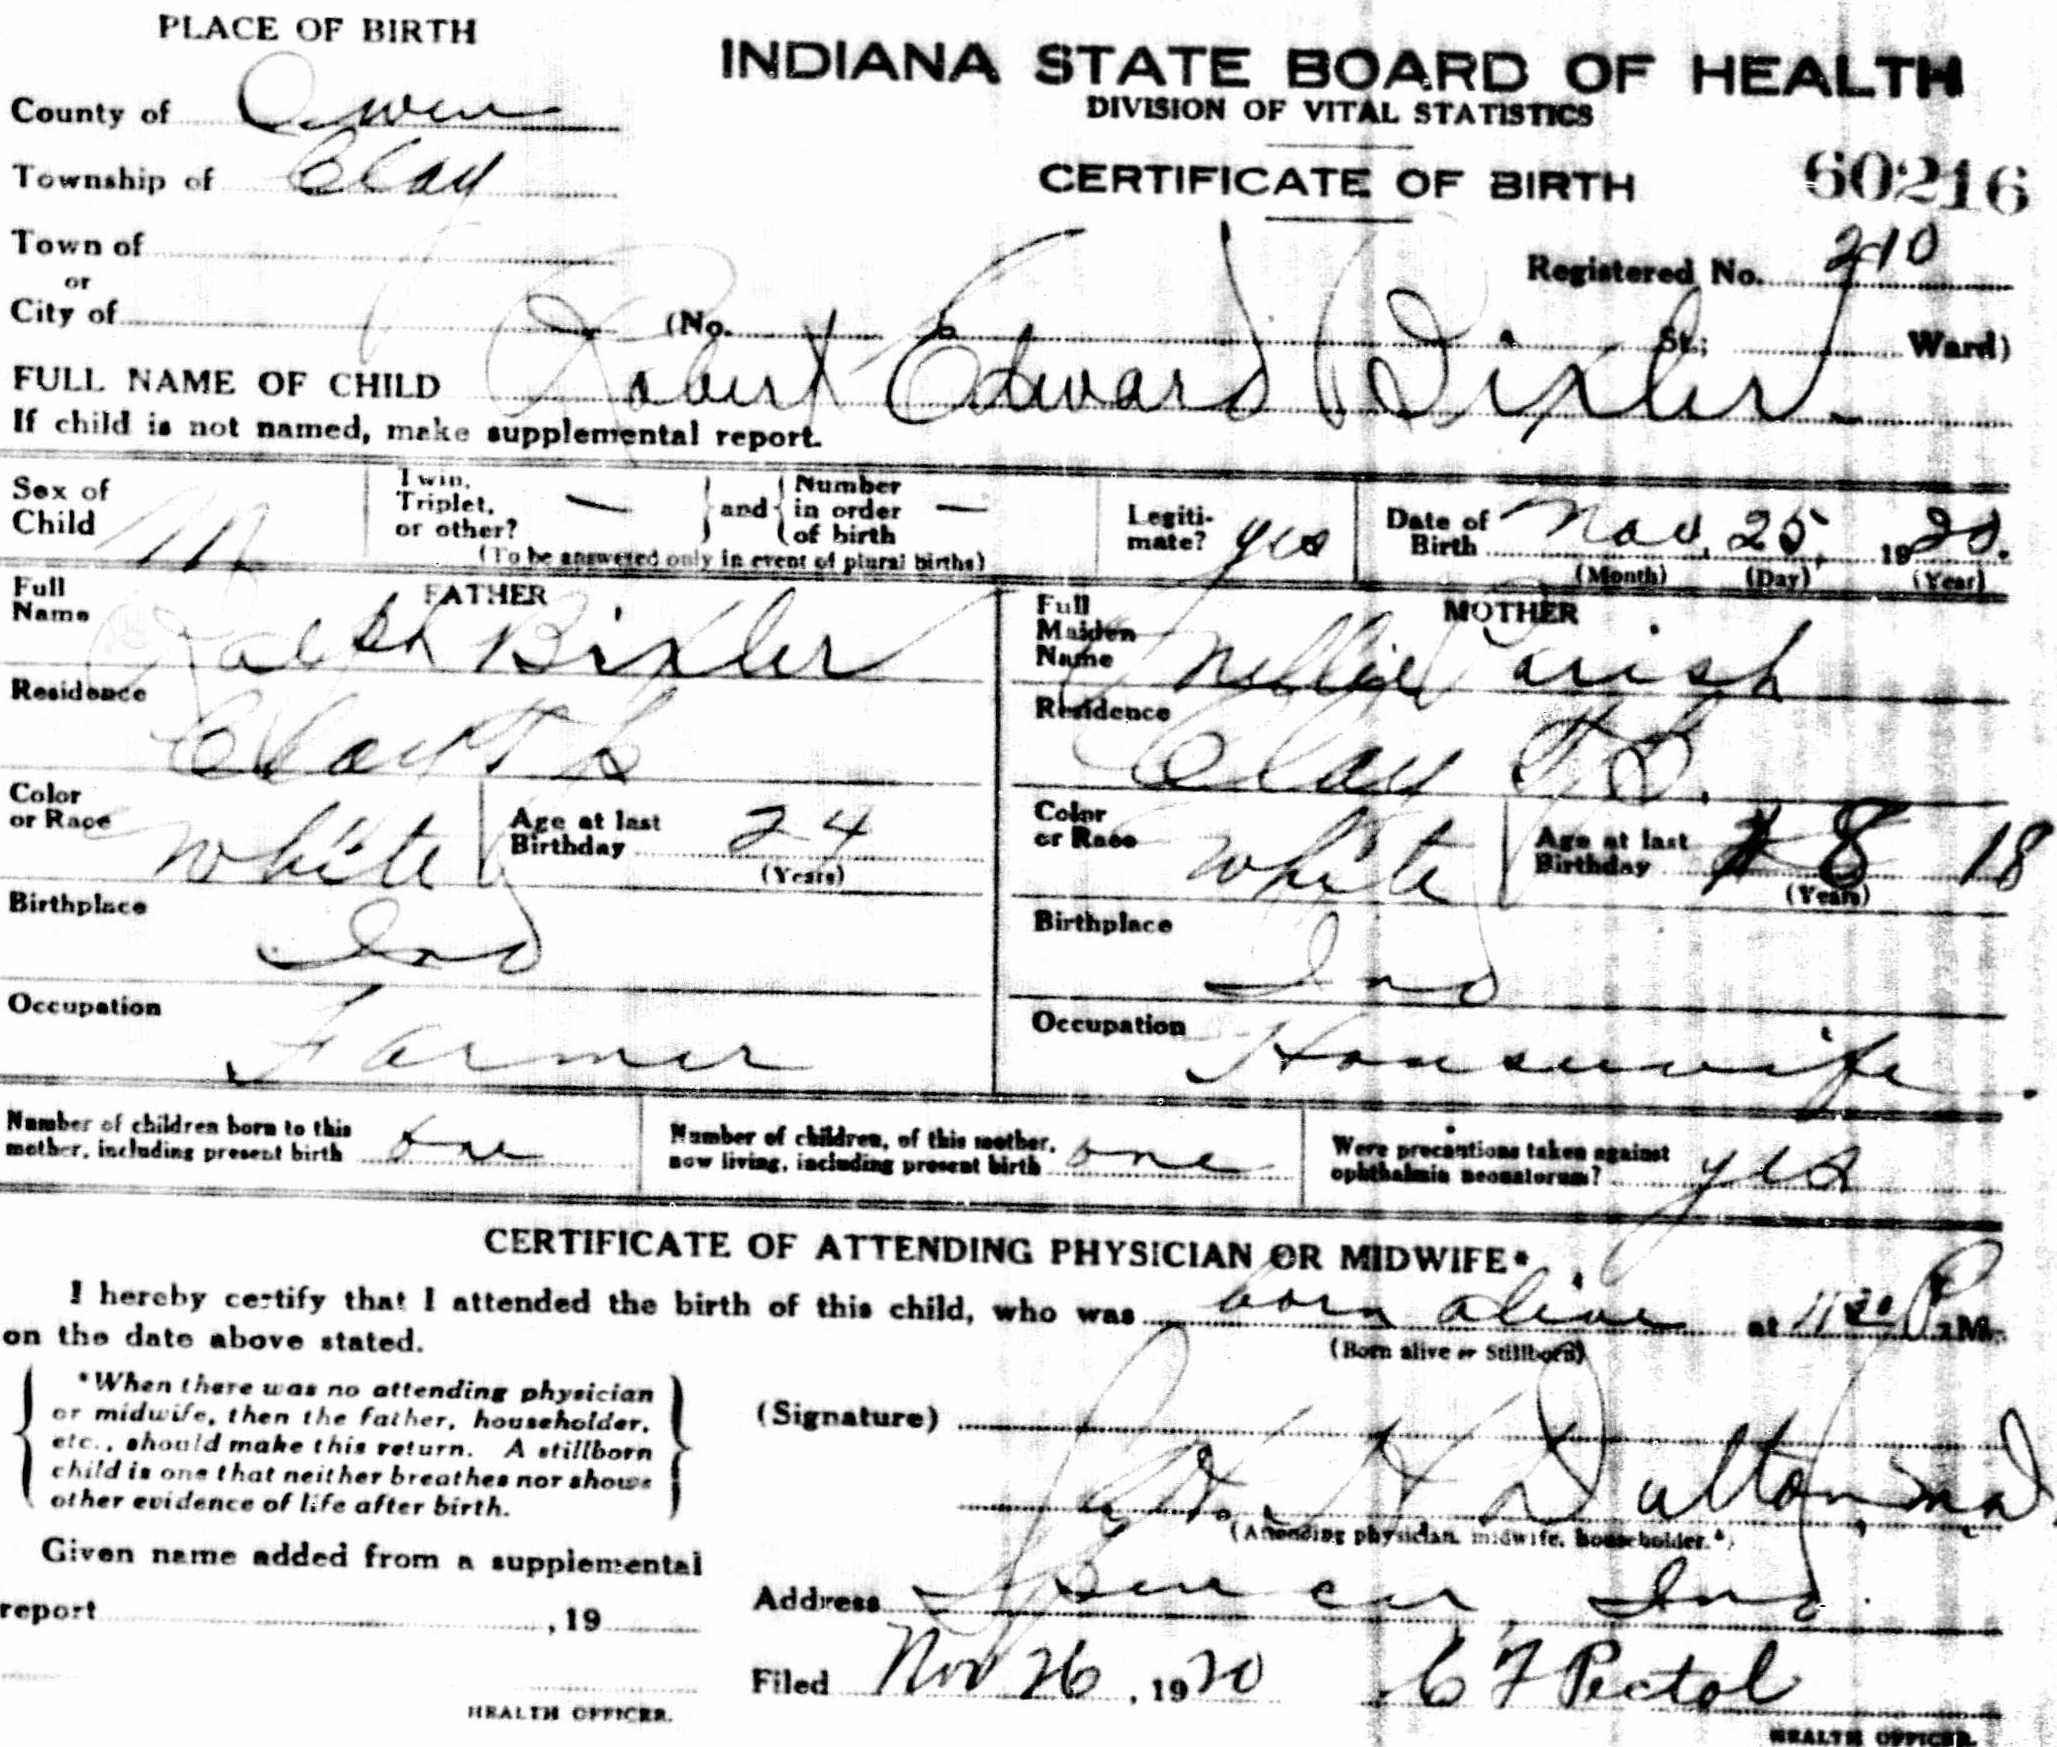 Robert Bixler - birth certificate